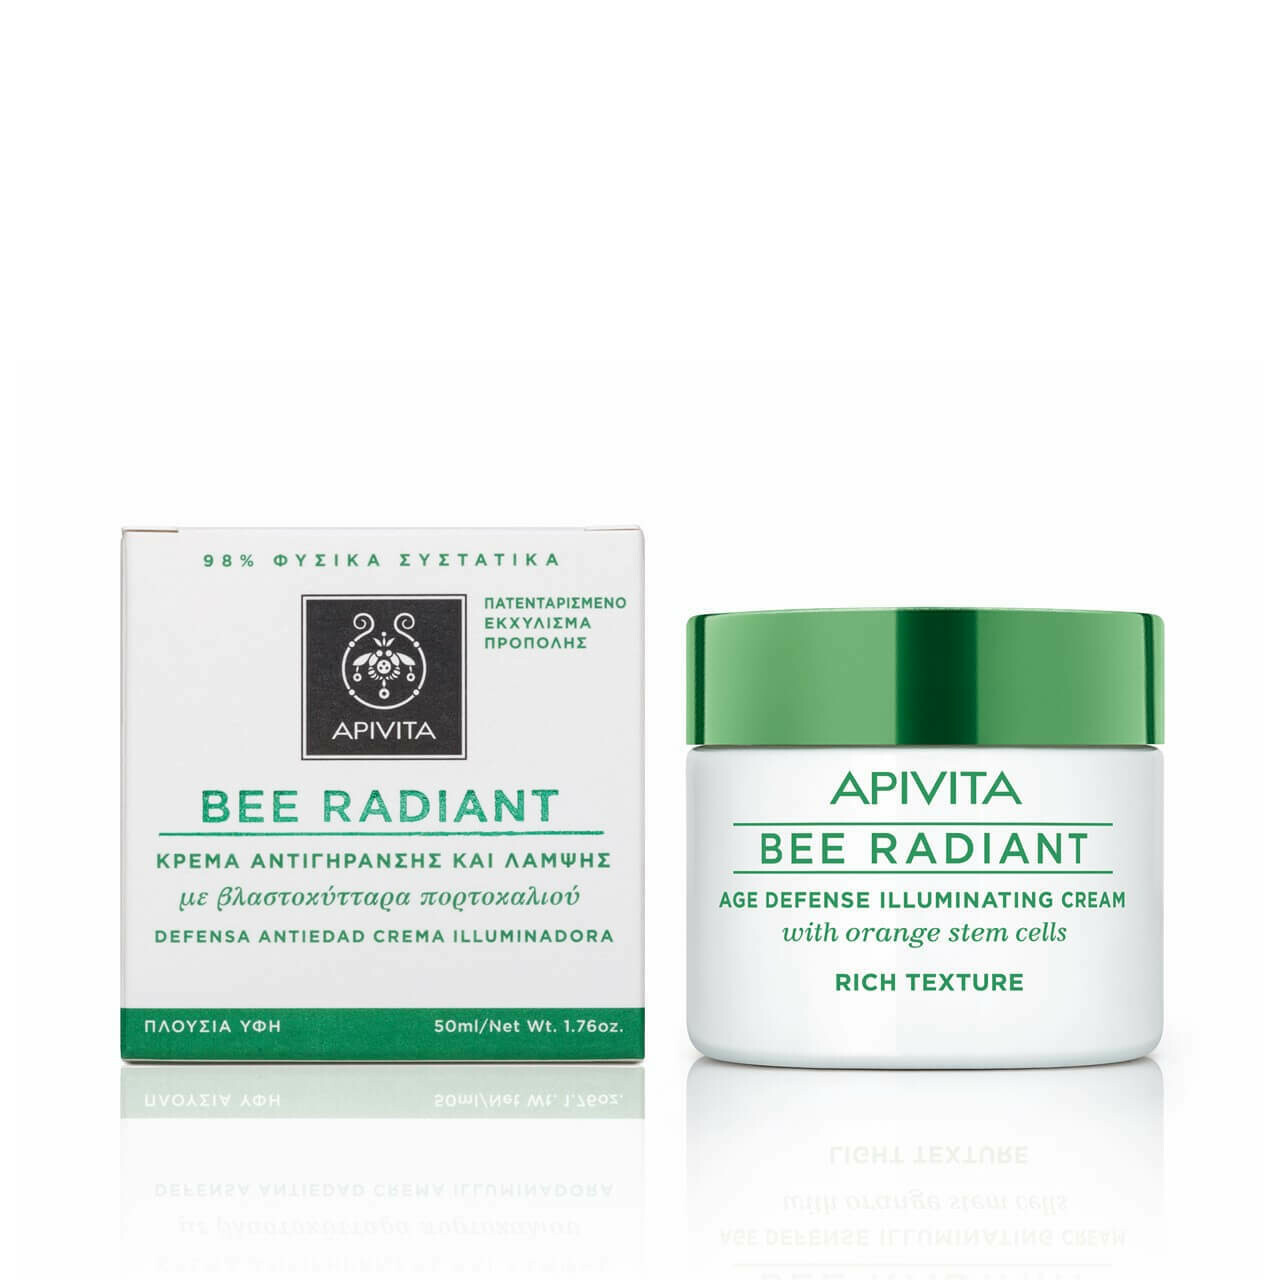 APIVITA BEE RADIANT RICH 50ML